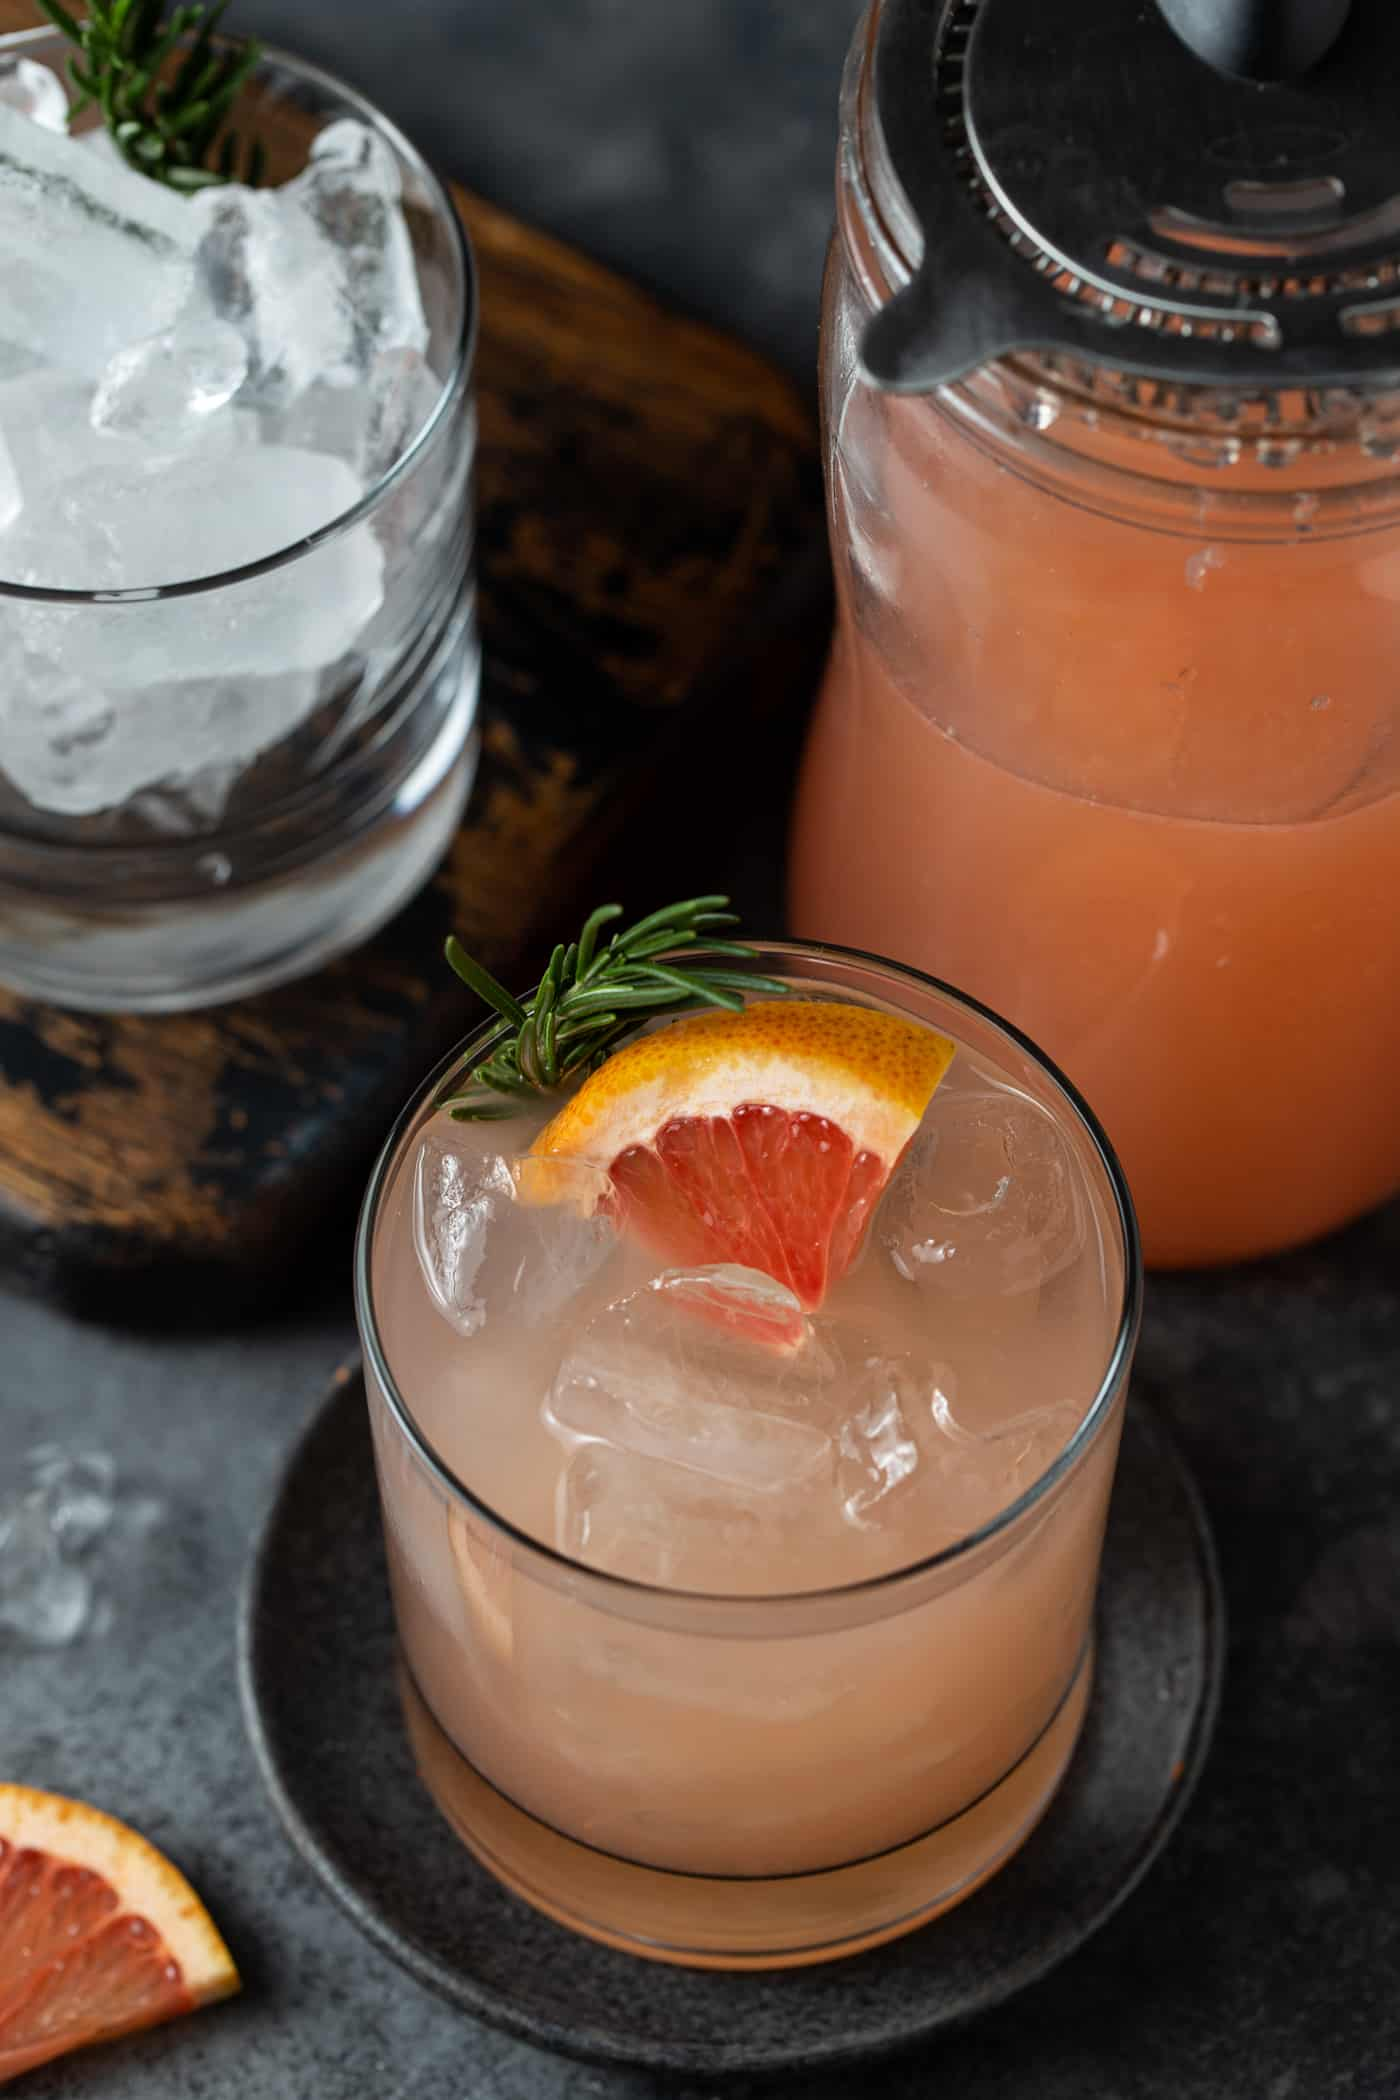 A close up of a glass of greyhound on a table, with Grapefruit juice.